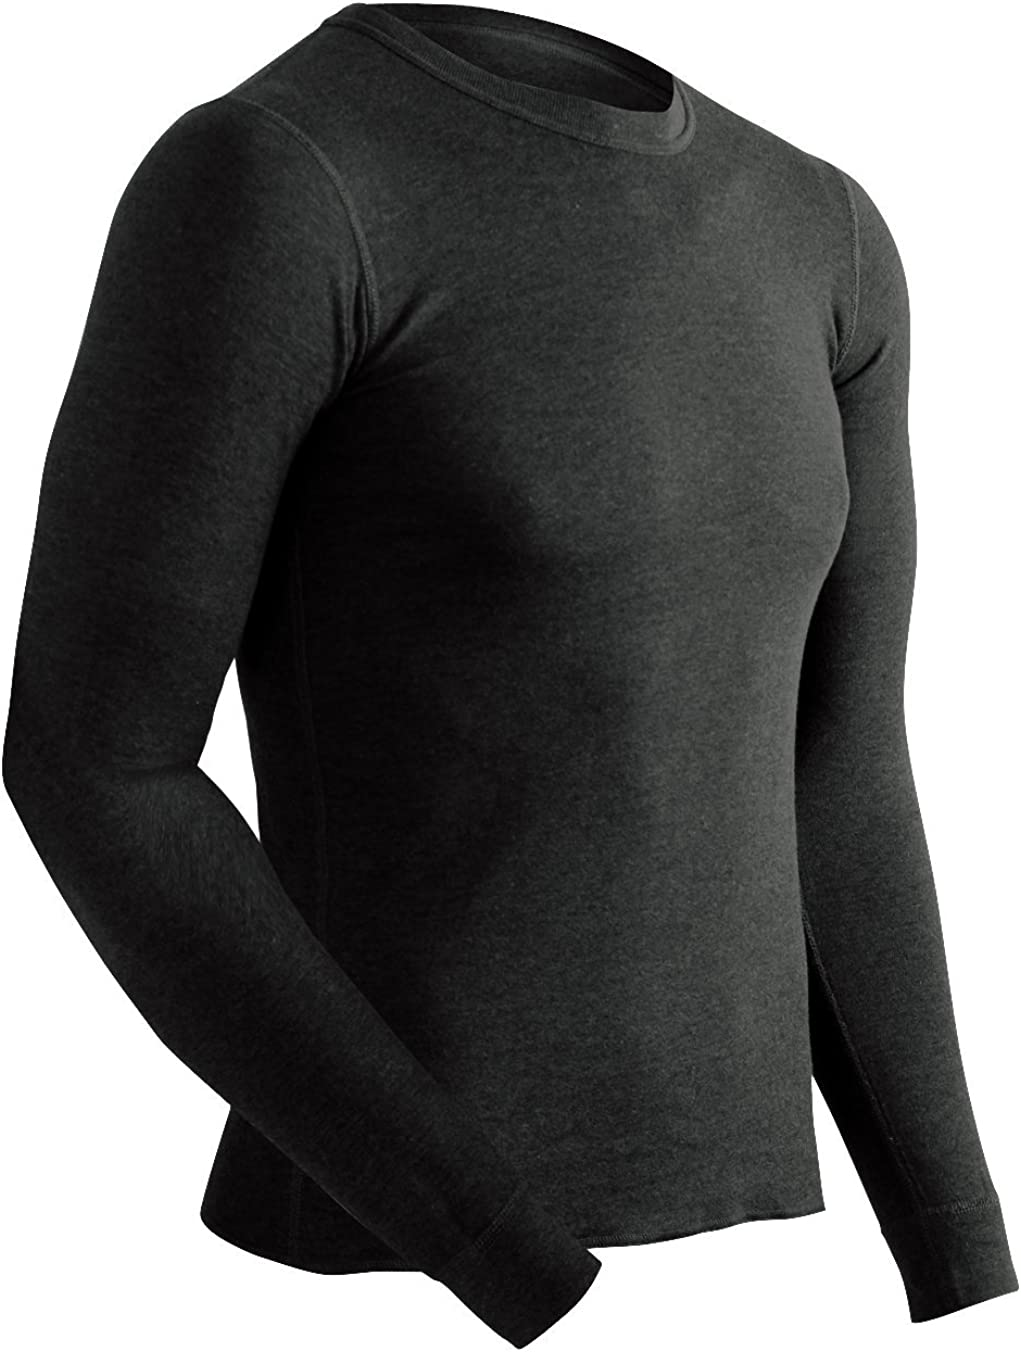 ColdPruf Men's Extreme Performance Dual Layer Long Sleeve Crew Neck Base Layer Top, Black, XX-Large Extreme Performance Men's Crew Top